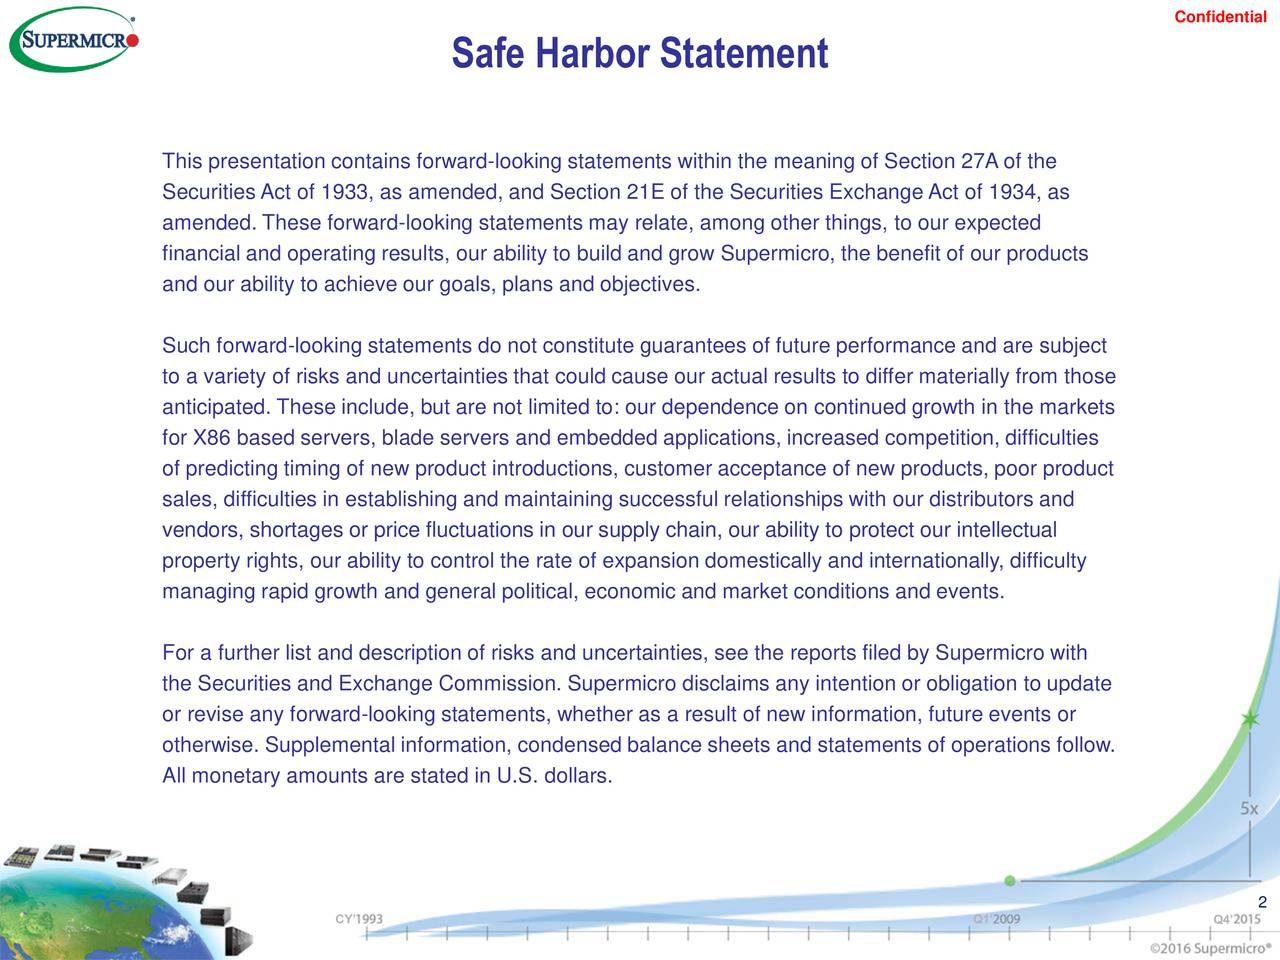 Safe Harbor Statement This presentation contains forward-looking statements within the meaning of Section 27A of the Securities Act of 1933, as amended, and Section 21E of the Securities Exchange Act of 1934, as amended. These forward-looking statements may relate, among other things, to our expected financial and operating results, our ability to build and grow Supermicro, the benefit of our products and our ability to achieve our goals, plans and objectives. Such forward-looking statements do not constitute guarantees of future performance and are subject to a variety of risks and uncertainties that could cause our actual results to differ materially from those anticipated. These include, but are not limited to: our dependence on continued growth in the markets for X86 based servers, blade servers and embedded applications, increased competition, difficulties of predicting timing of new product introductions, customer acceptance of new products, poor product sales, difficulties in establishing and maintaining successful relationships with our distributors and vendors, shortages or price fluctuations in our supply chain, our ability to protect our intellectual property rights, our ability to control the rate of expansion domestically and internationally, difficulty managing rapid growth and general political, economic and market conditions and events. For a further list and description of risks and uncertainties, see the reports filed by Supermicro with the Securities and Exchange Commission. Supermicro disclaims any intention or obligation to update or revise any forward-looking statements, whether as a result of new information, future events or otherwise. Supplemental information, condensed balance sheets and statements of operations follow. All monetary amounts are stated in U.S. dollars. 2 CY Q1 Q4